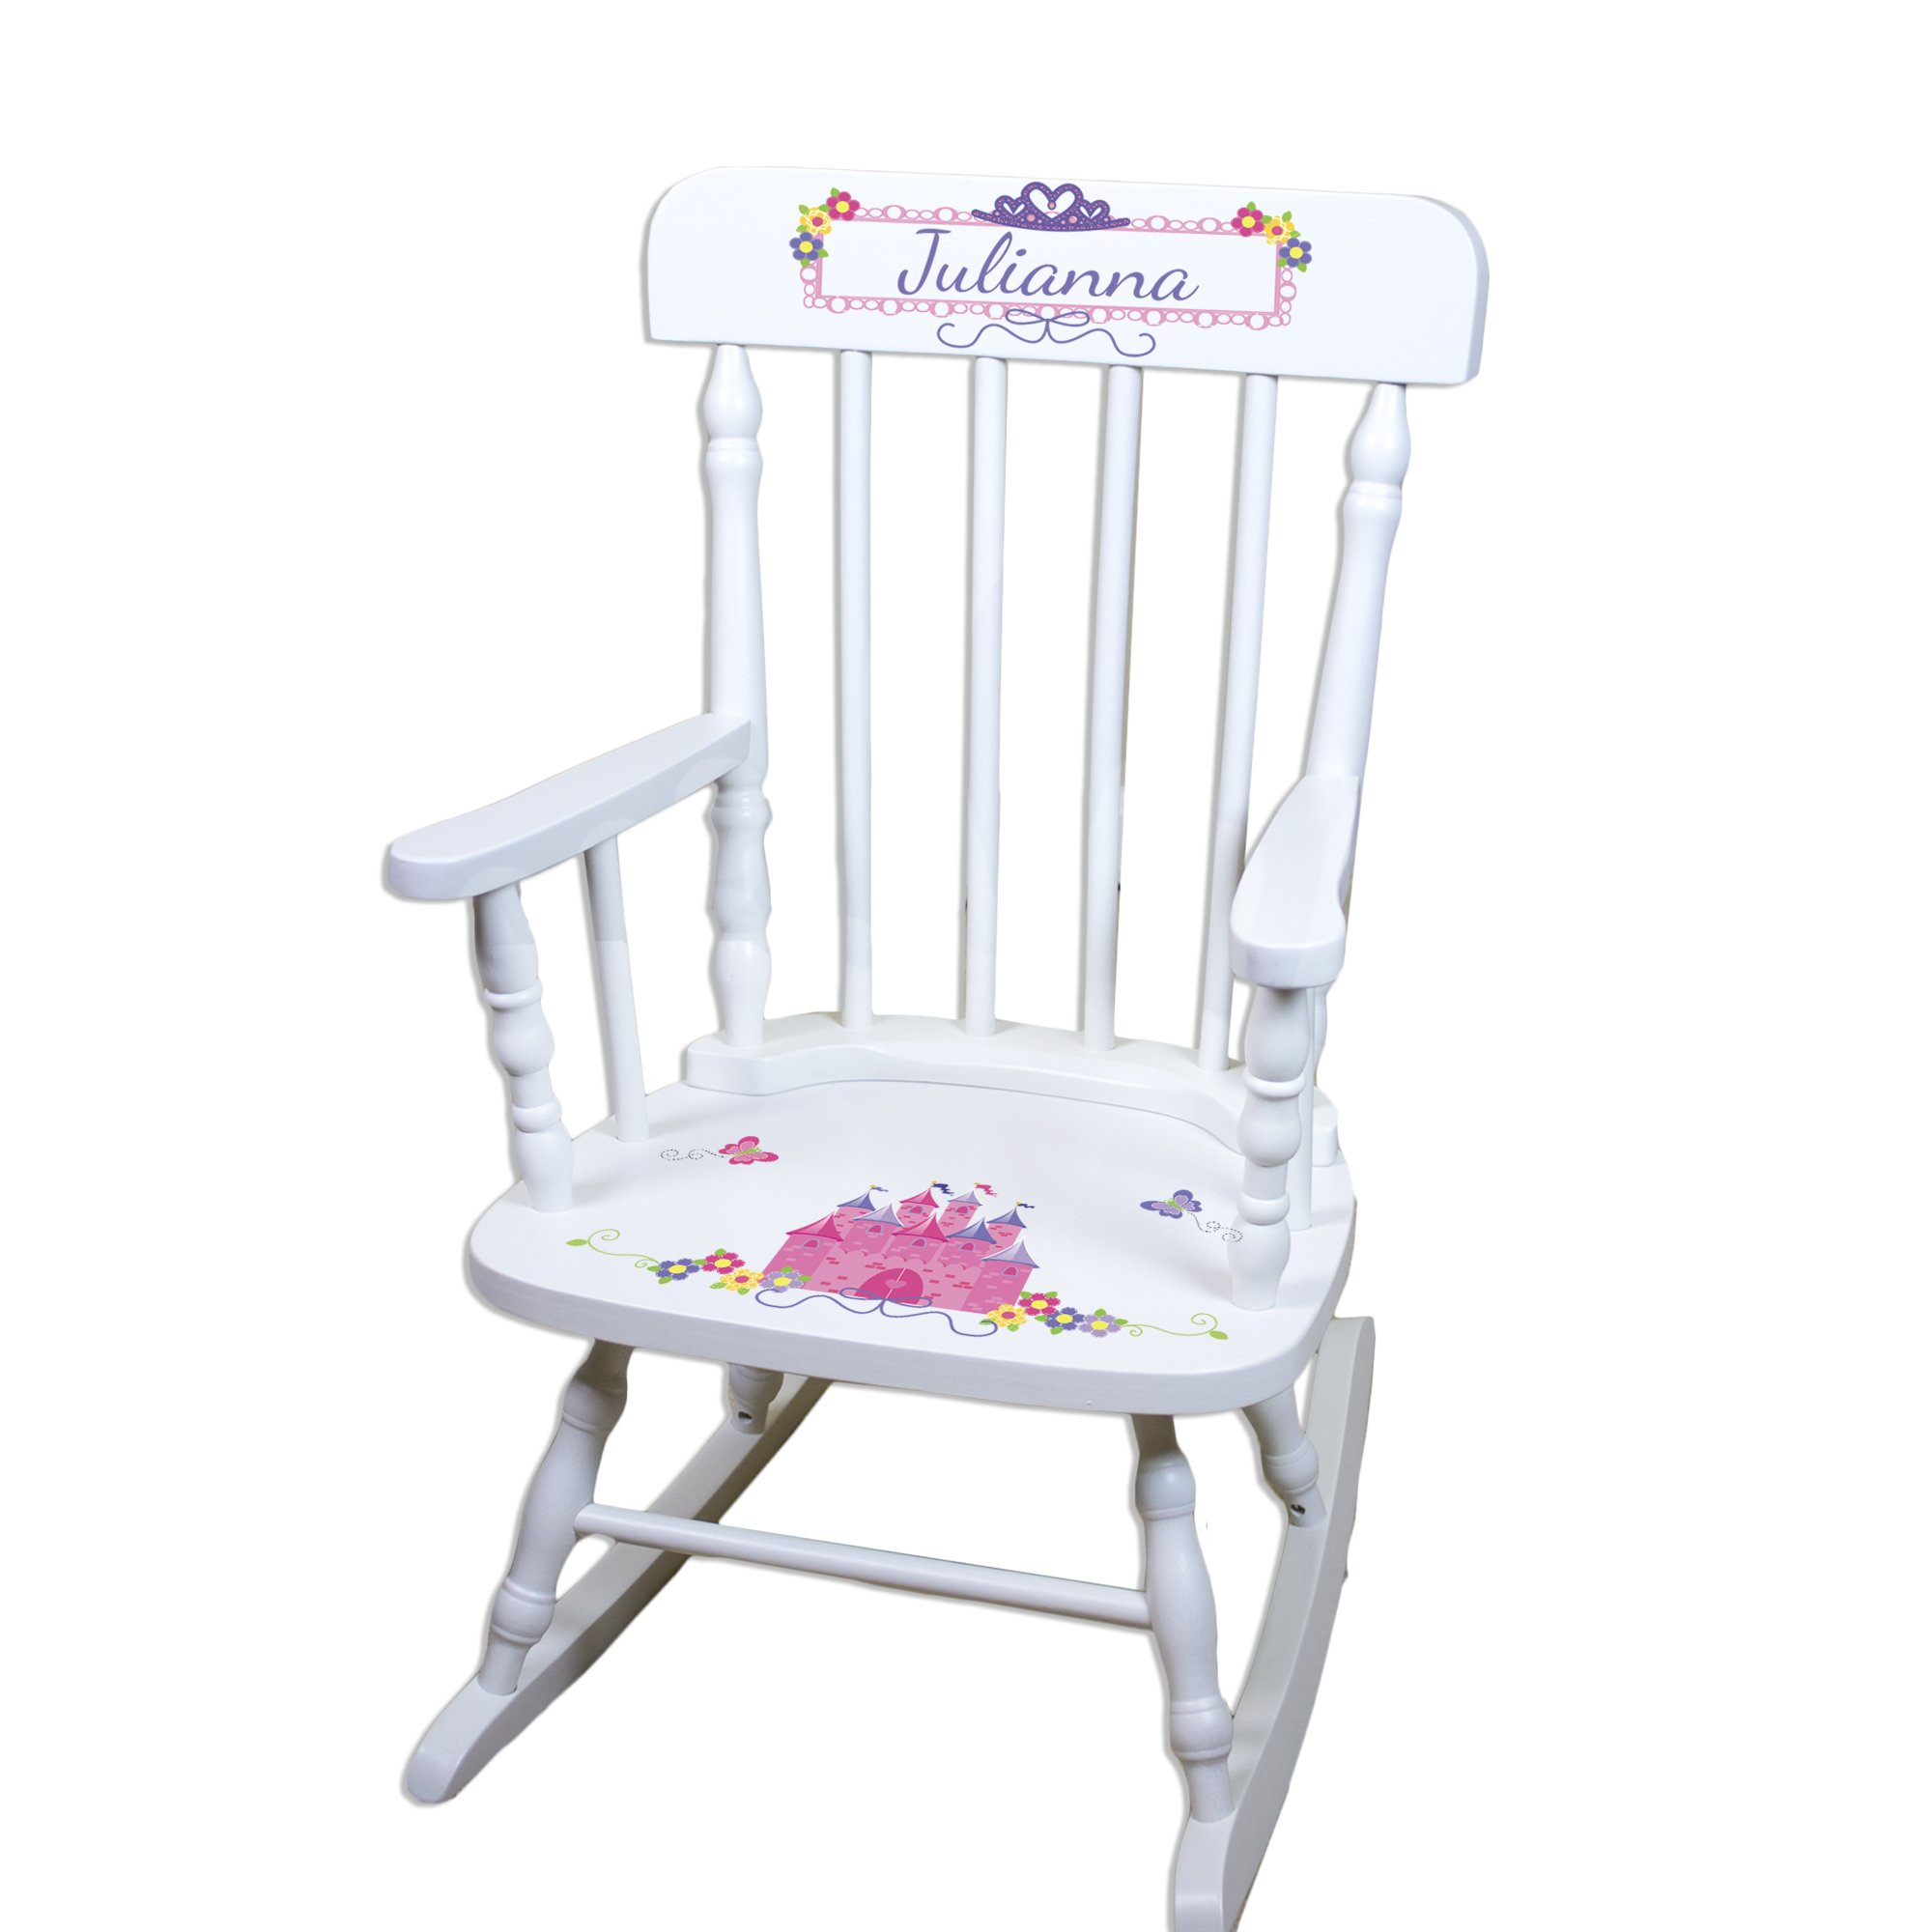 Children's Personalized White Princess Castle Rocking Chair